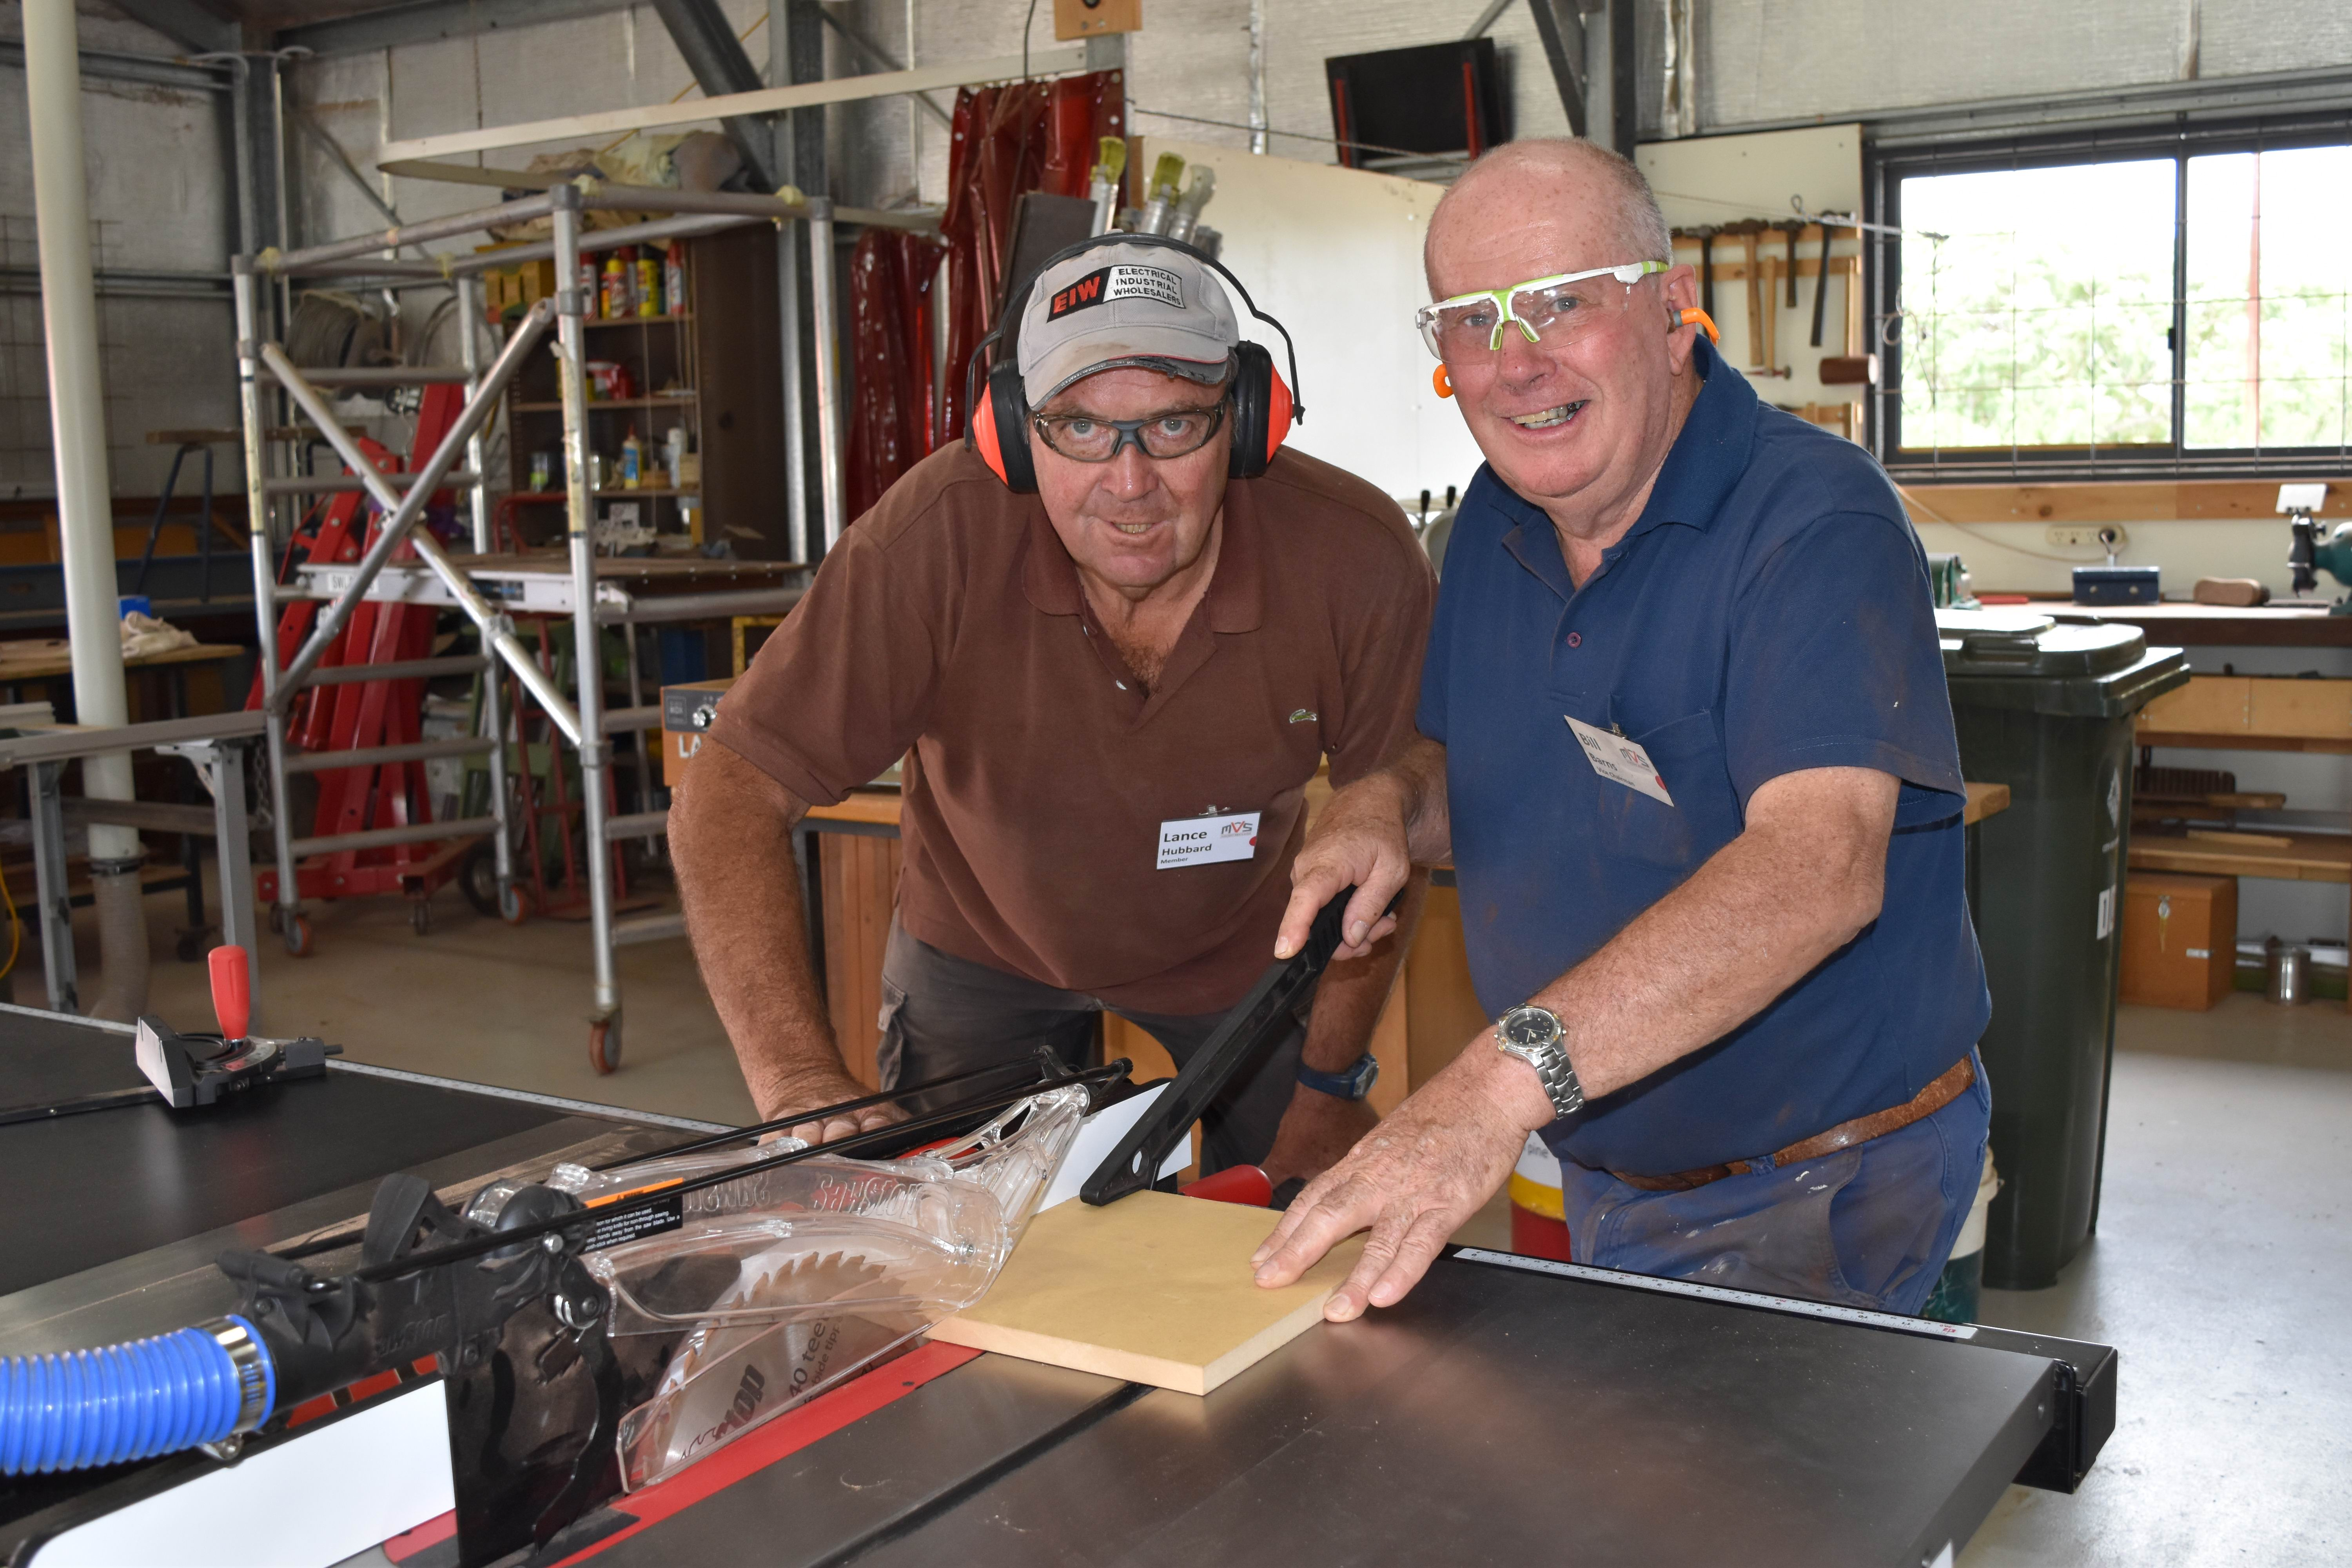 Vincent Men's Shed member Lance Hubbard and vice-chairman Bill Barns with the new safety saw.